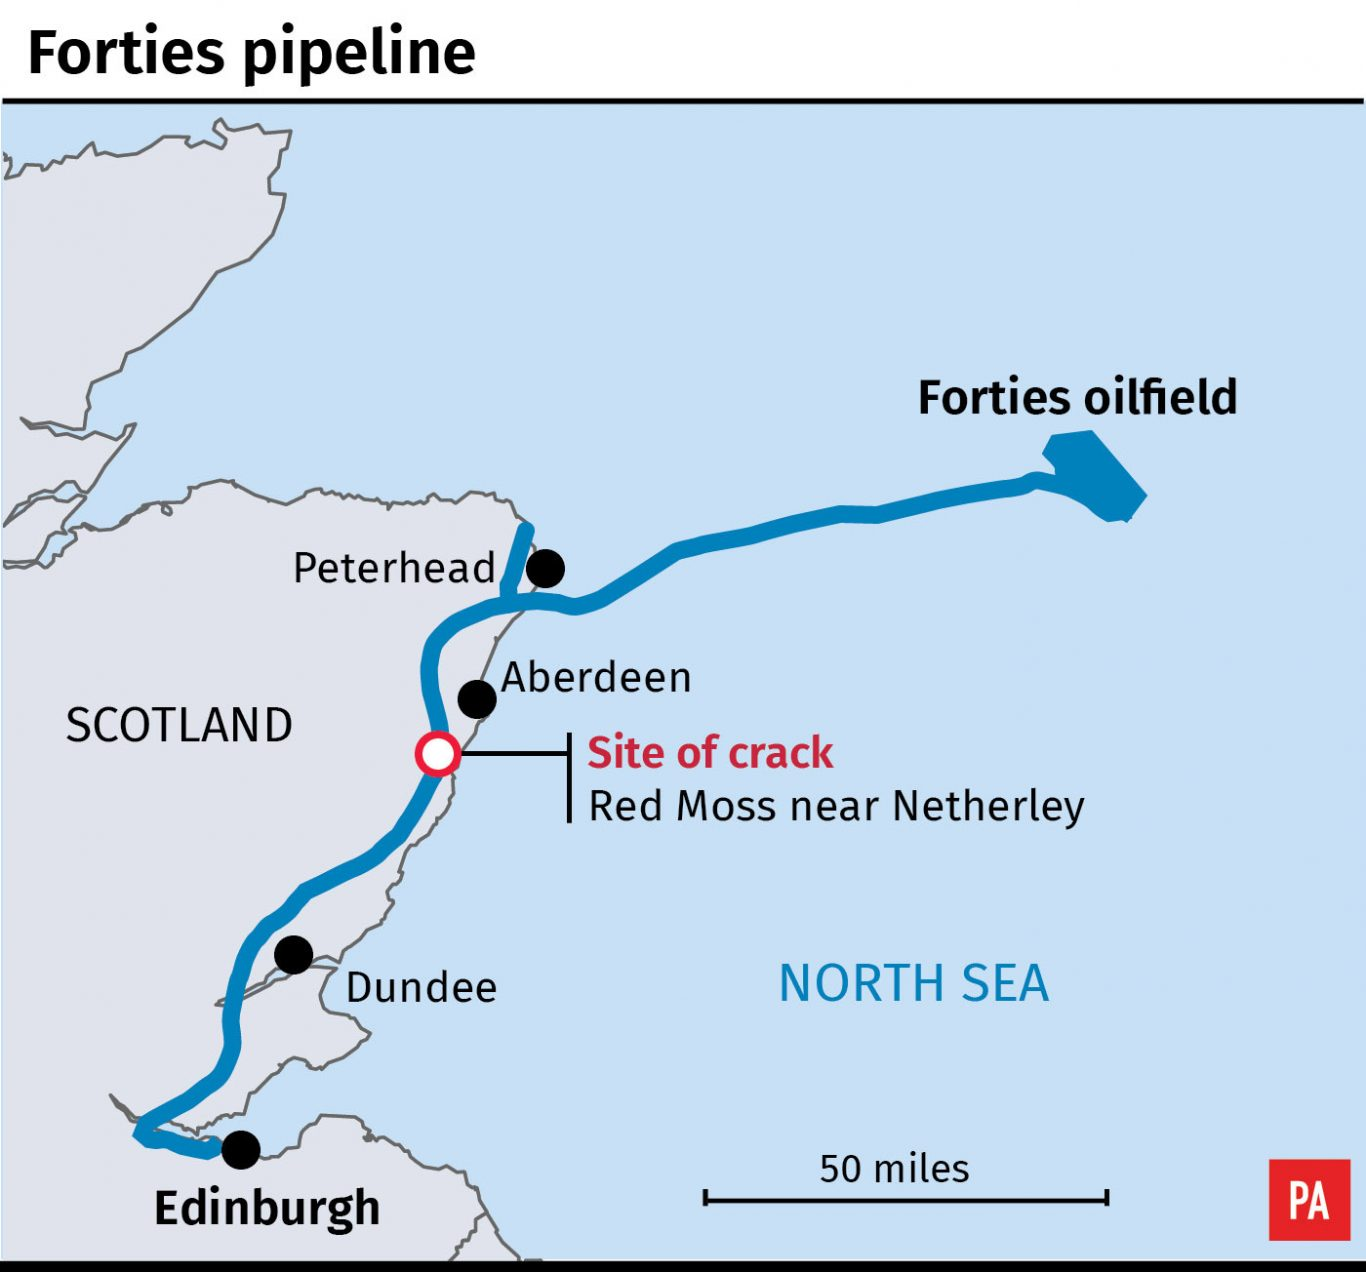 Forties pipeline locator map.